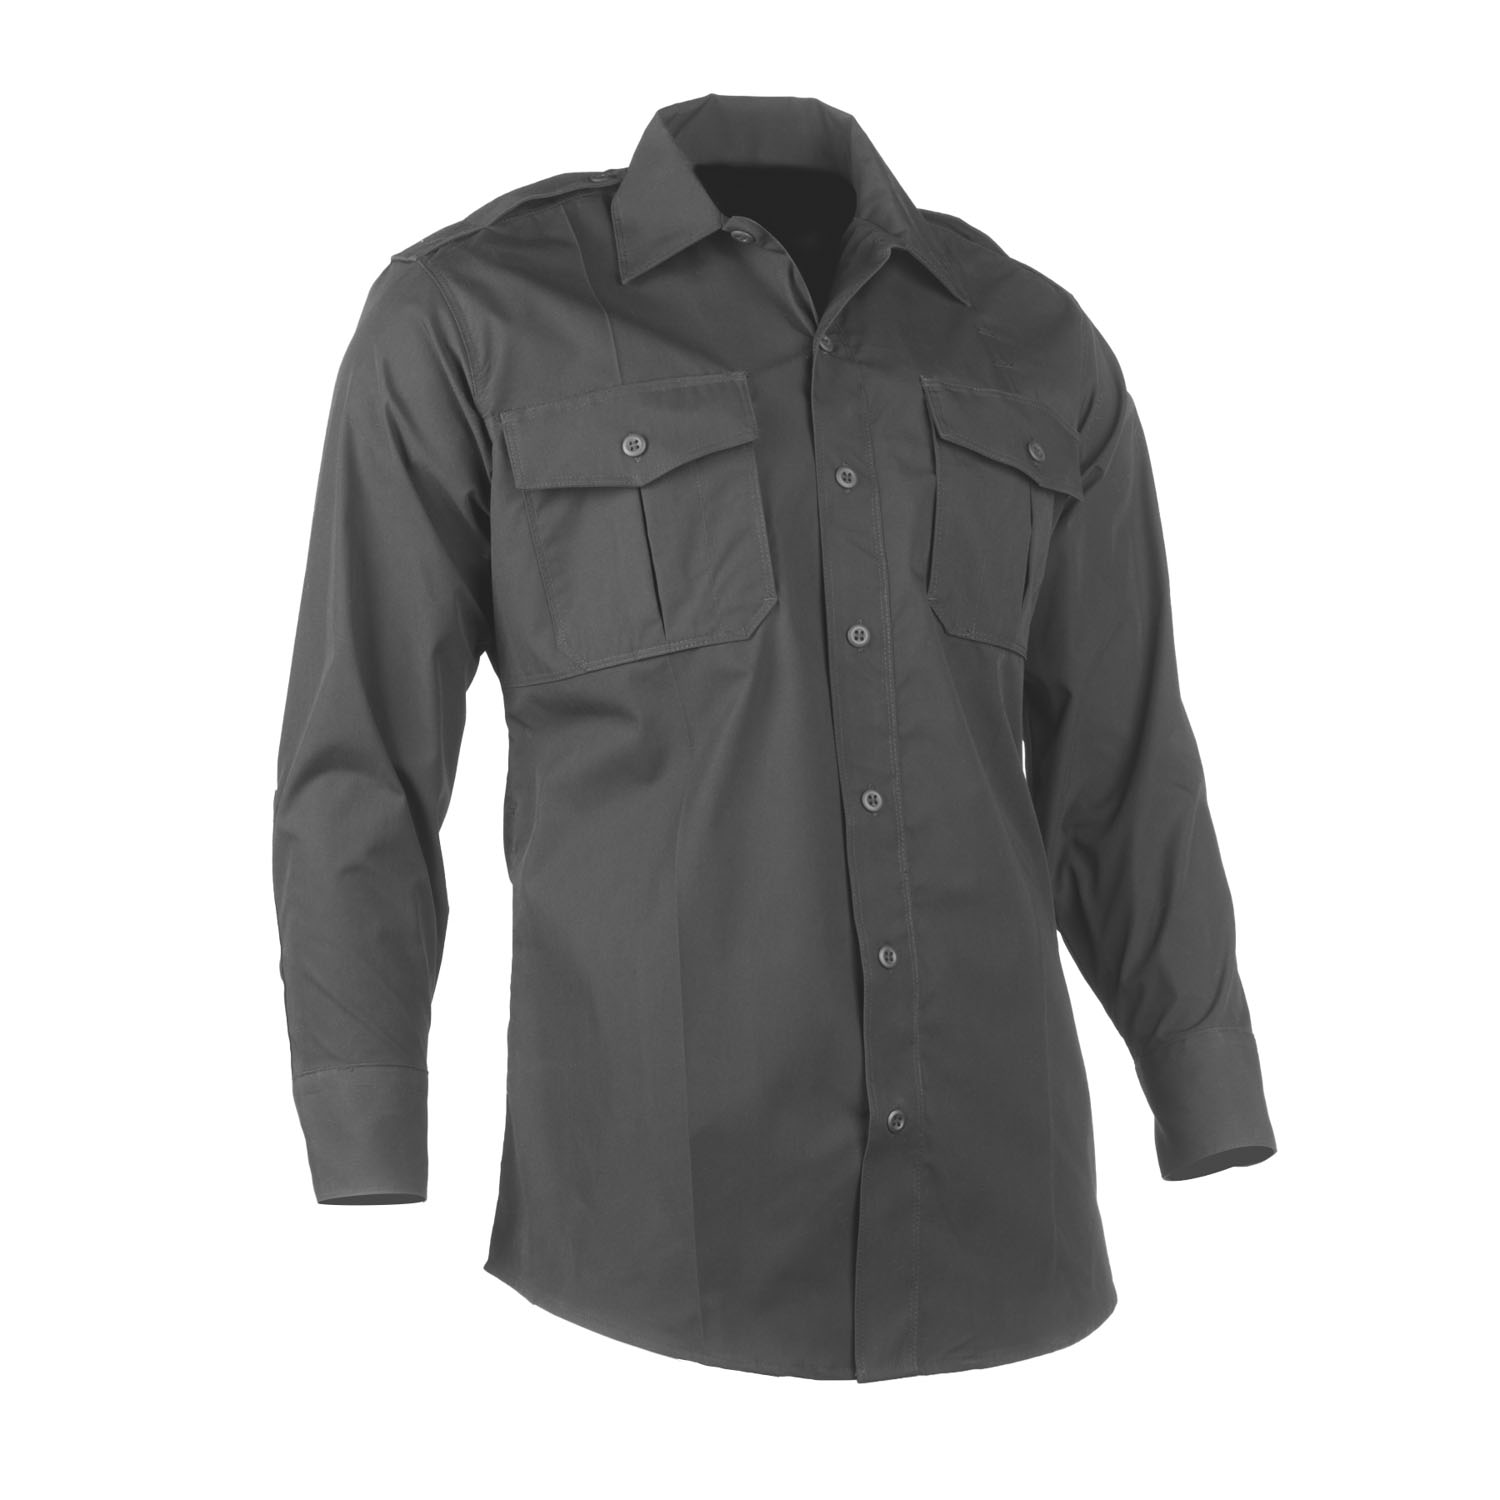 CROSS FX ELITE CLASS B MEN'S LONG SLEEVE SHIRT